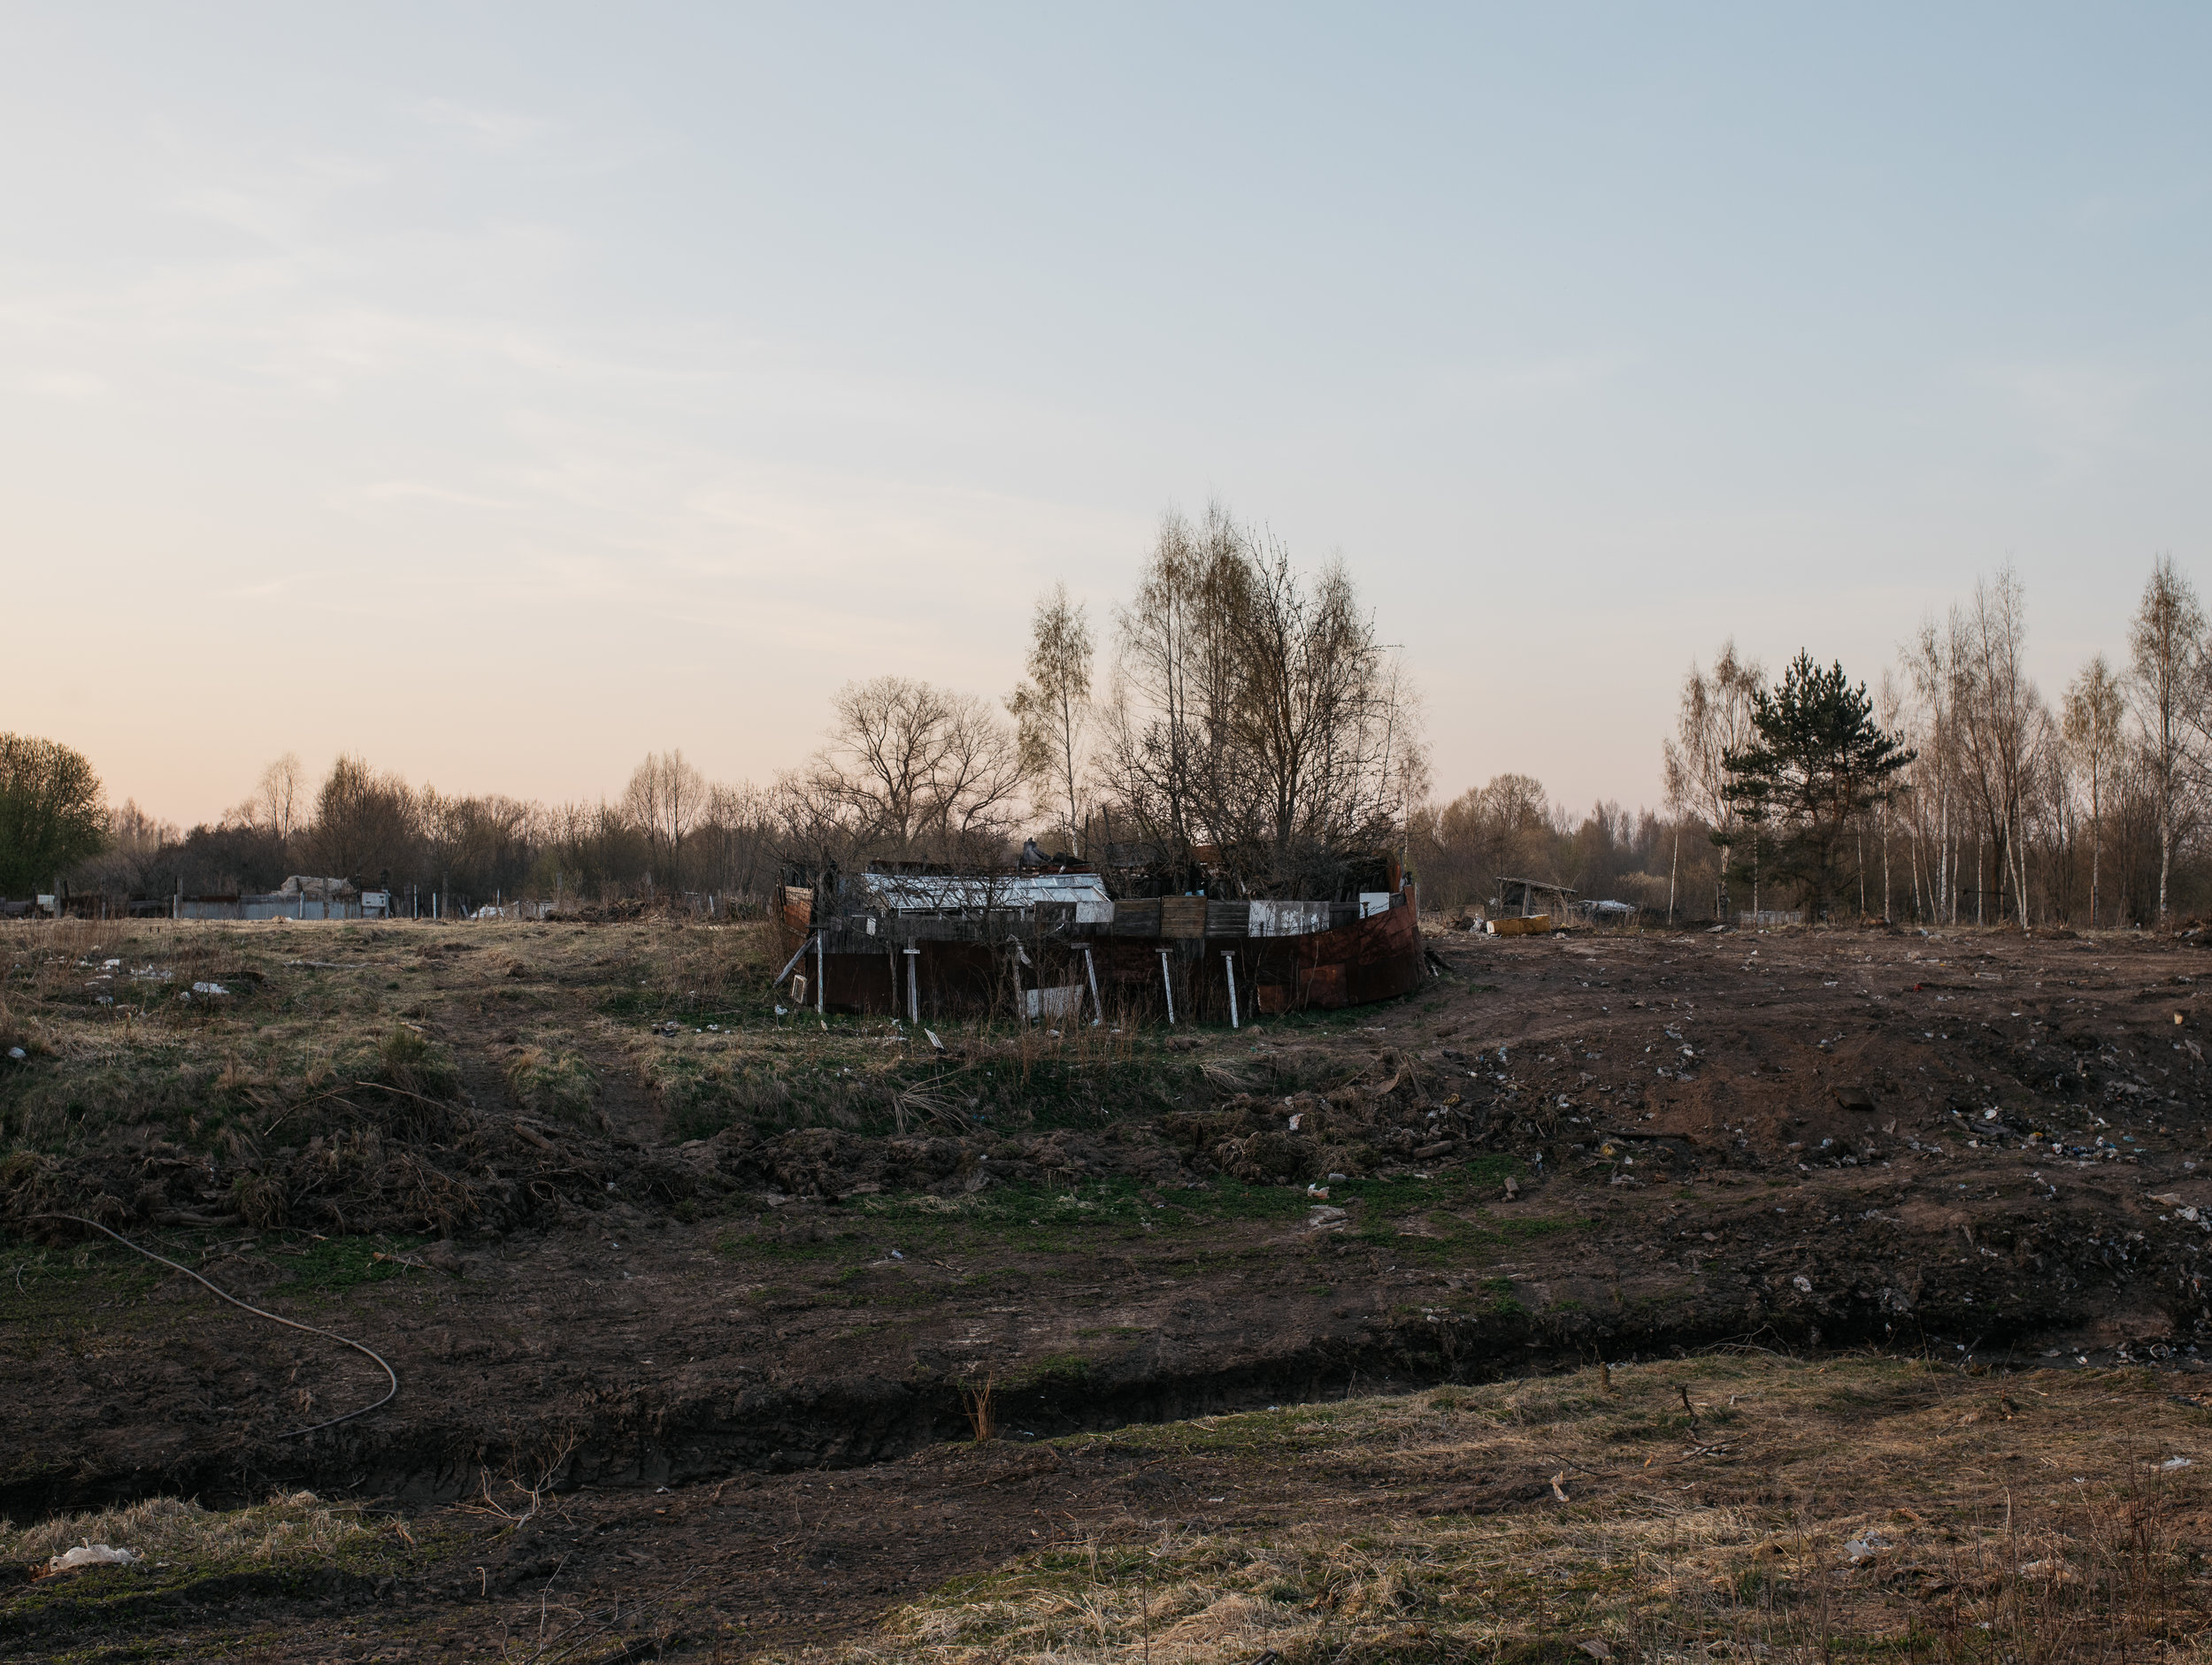 Allotment, Hiinalinn, Tartu, Estonia, April 2019